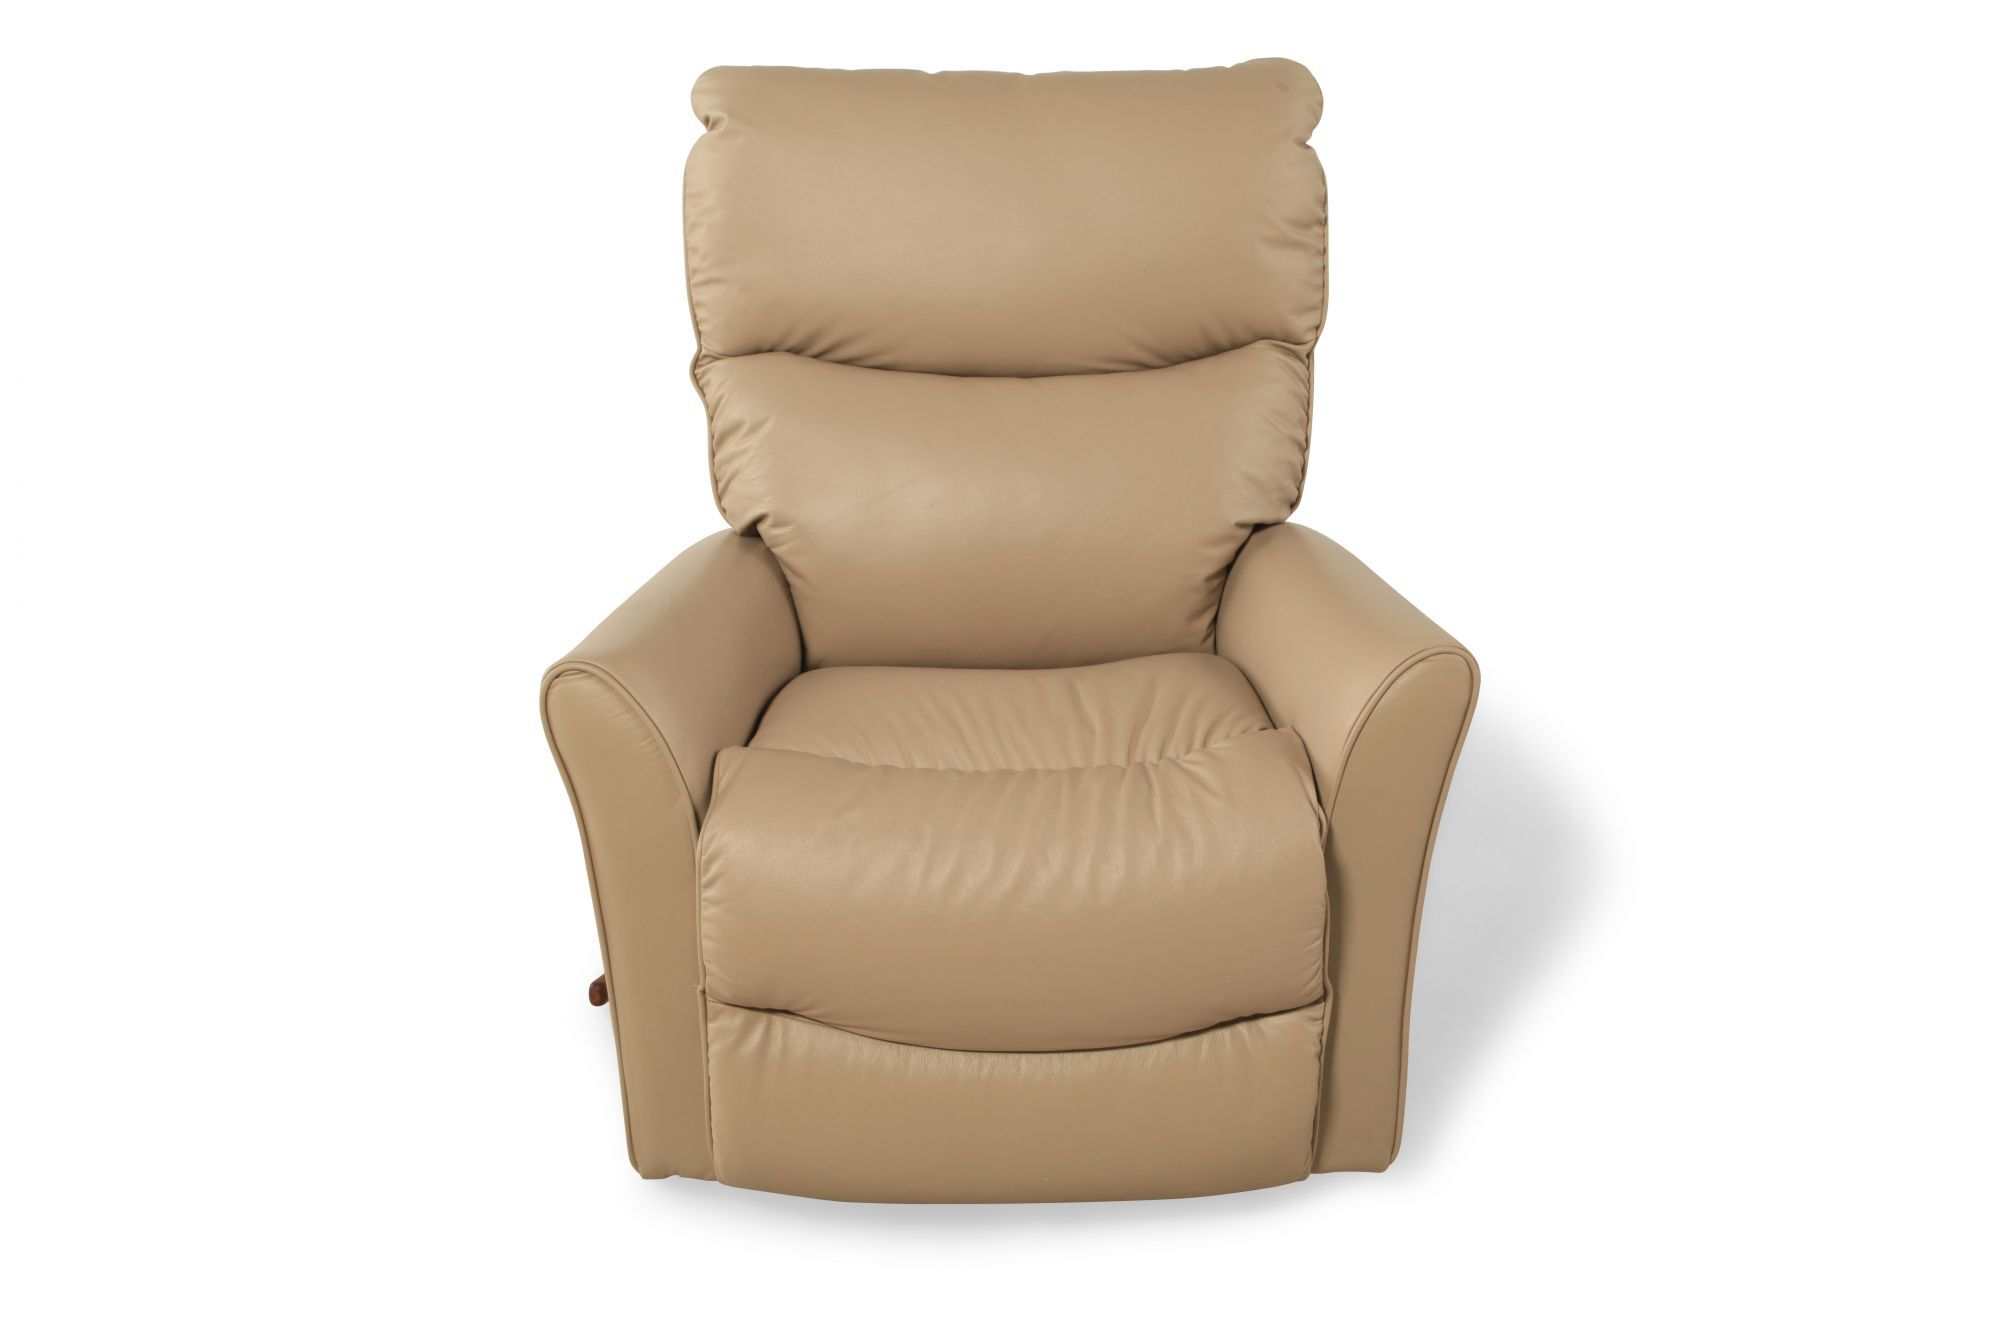 La-Z-Boy Rowan Natural Leather Recliner  sc 1 st  Mathis Brothers & La-Z-Boy Rowan Natural Leather Recliner | Mathis Brothers Furniture islam-shia.org